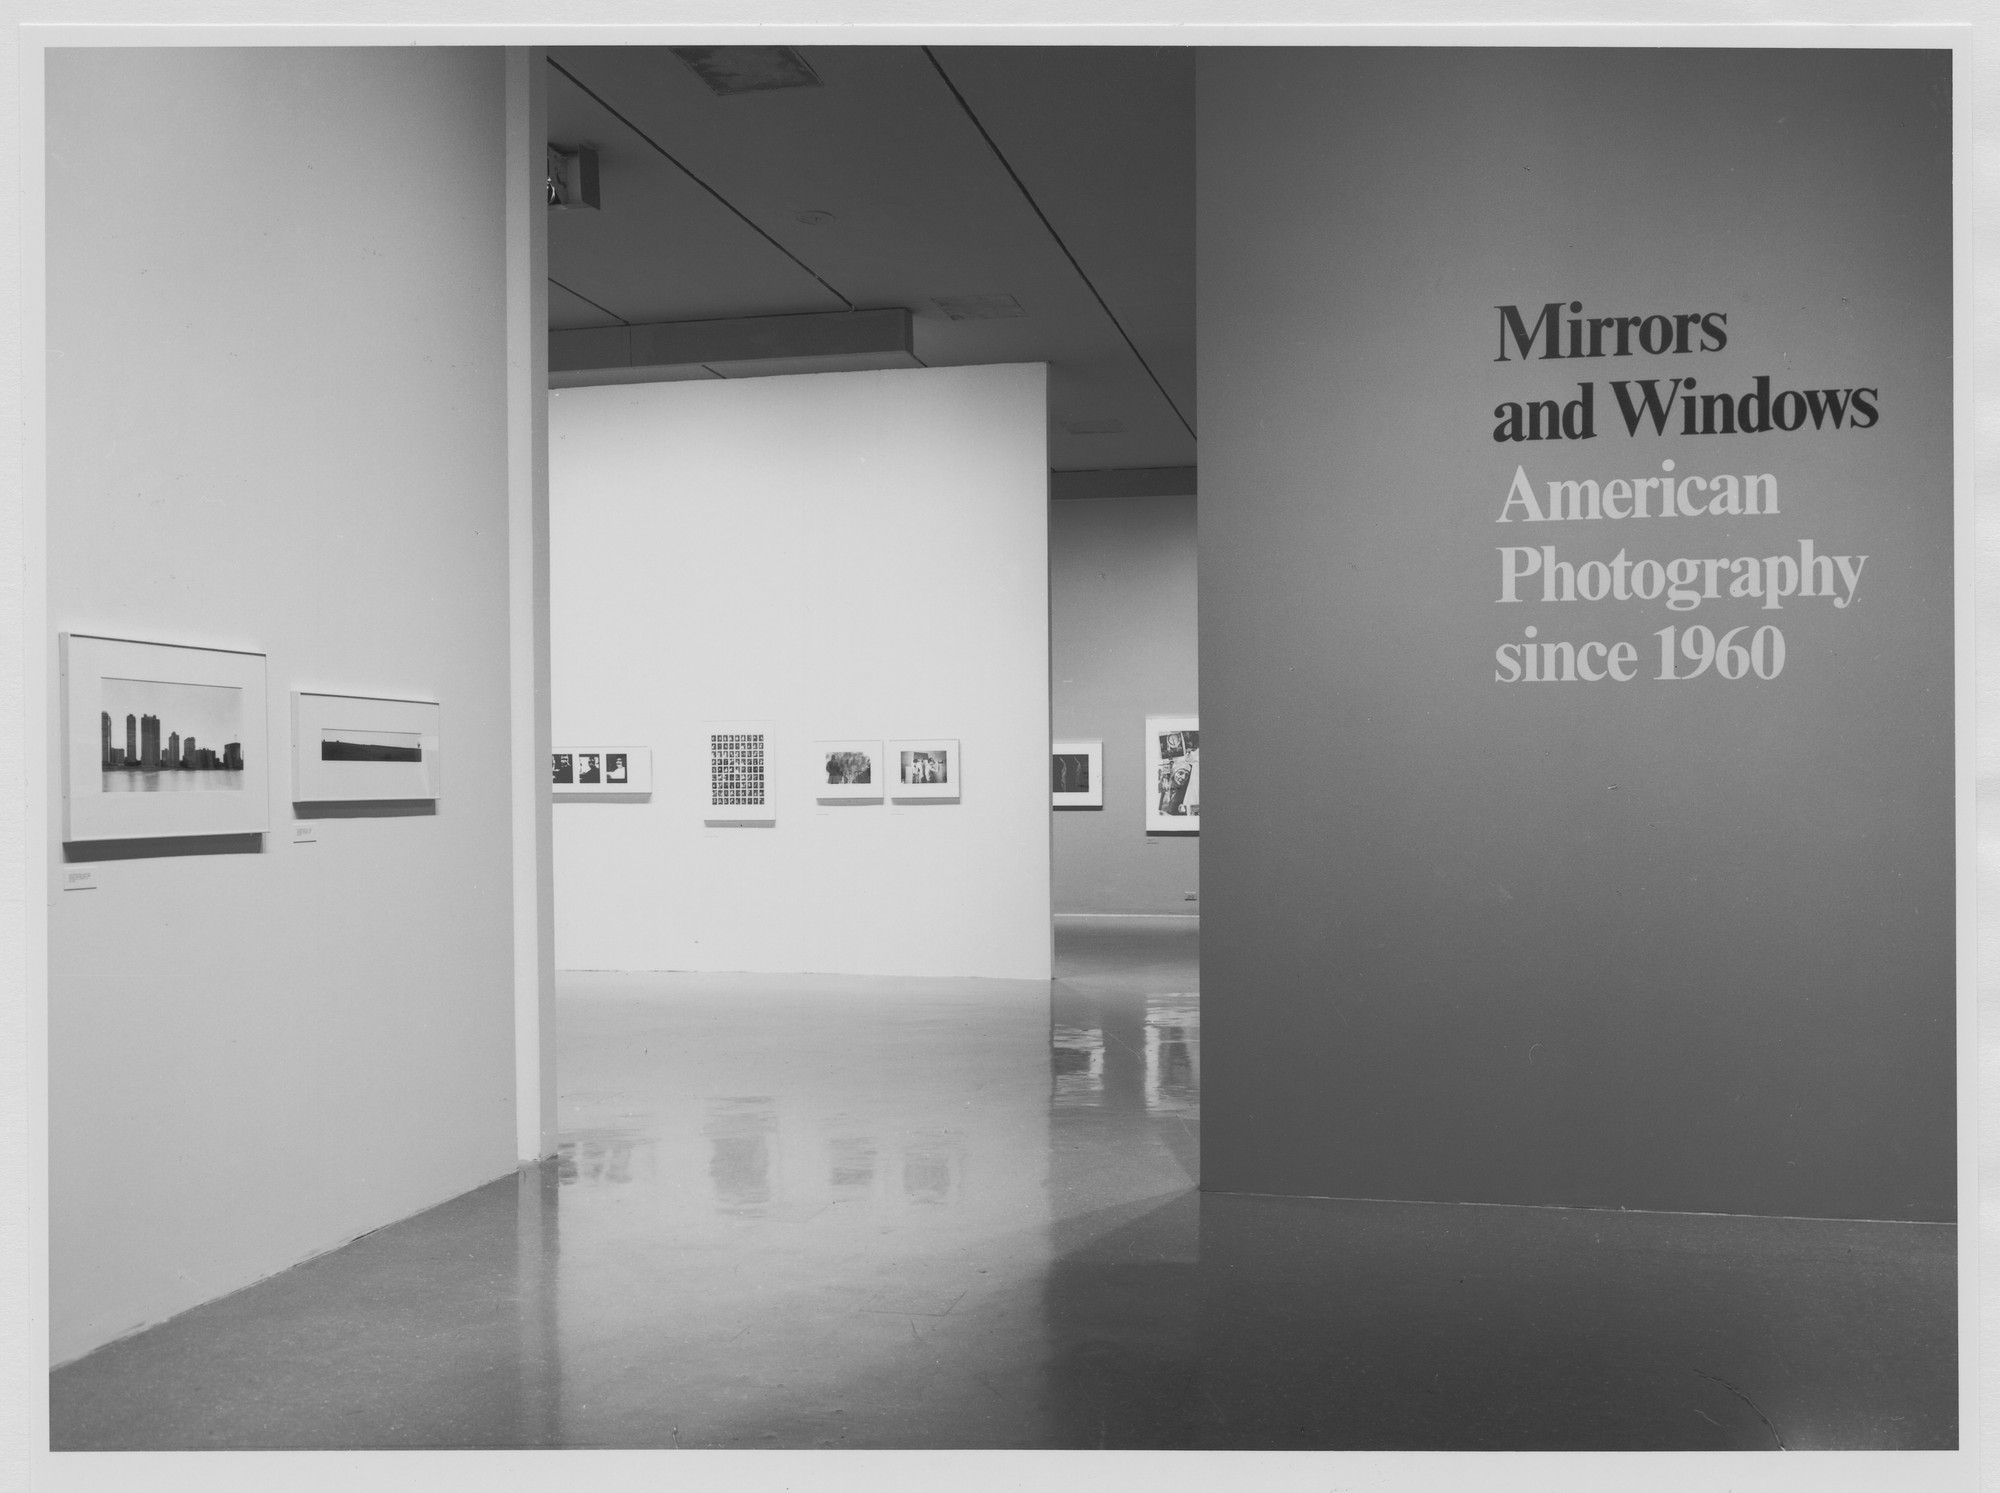 "Installation view of the exhibition, ""Mirrors and Windows: American Photography Since 1960"" July 26, 1978–October 2, 1978. Photographic Archive. The Museum of Modern Art Archives, New York. IN1221.1. Photograph by Katherine Keller."